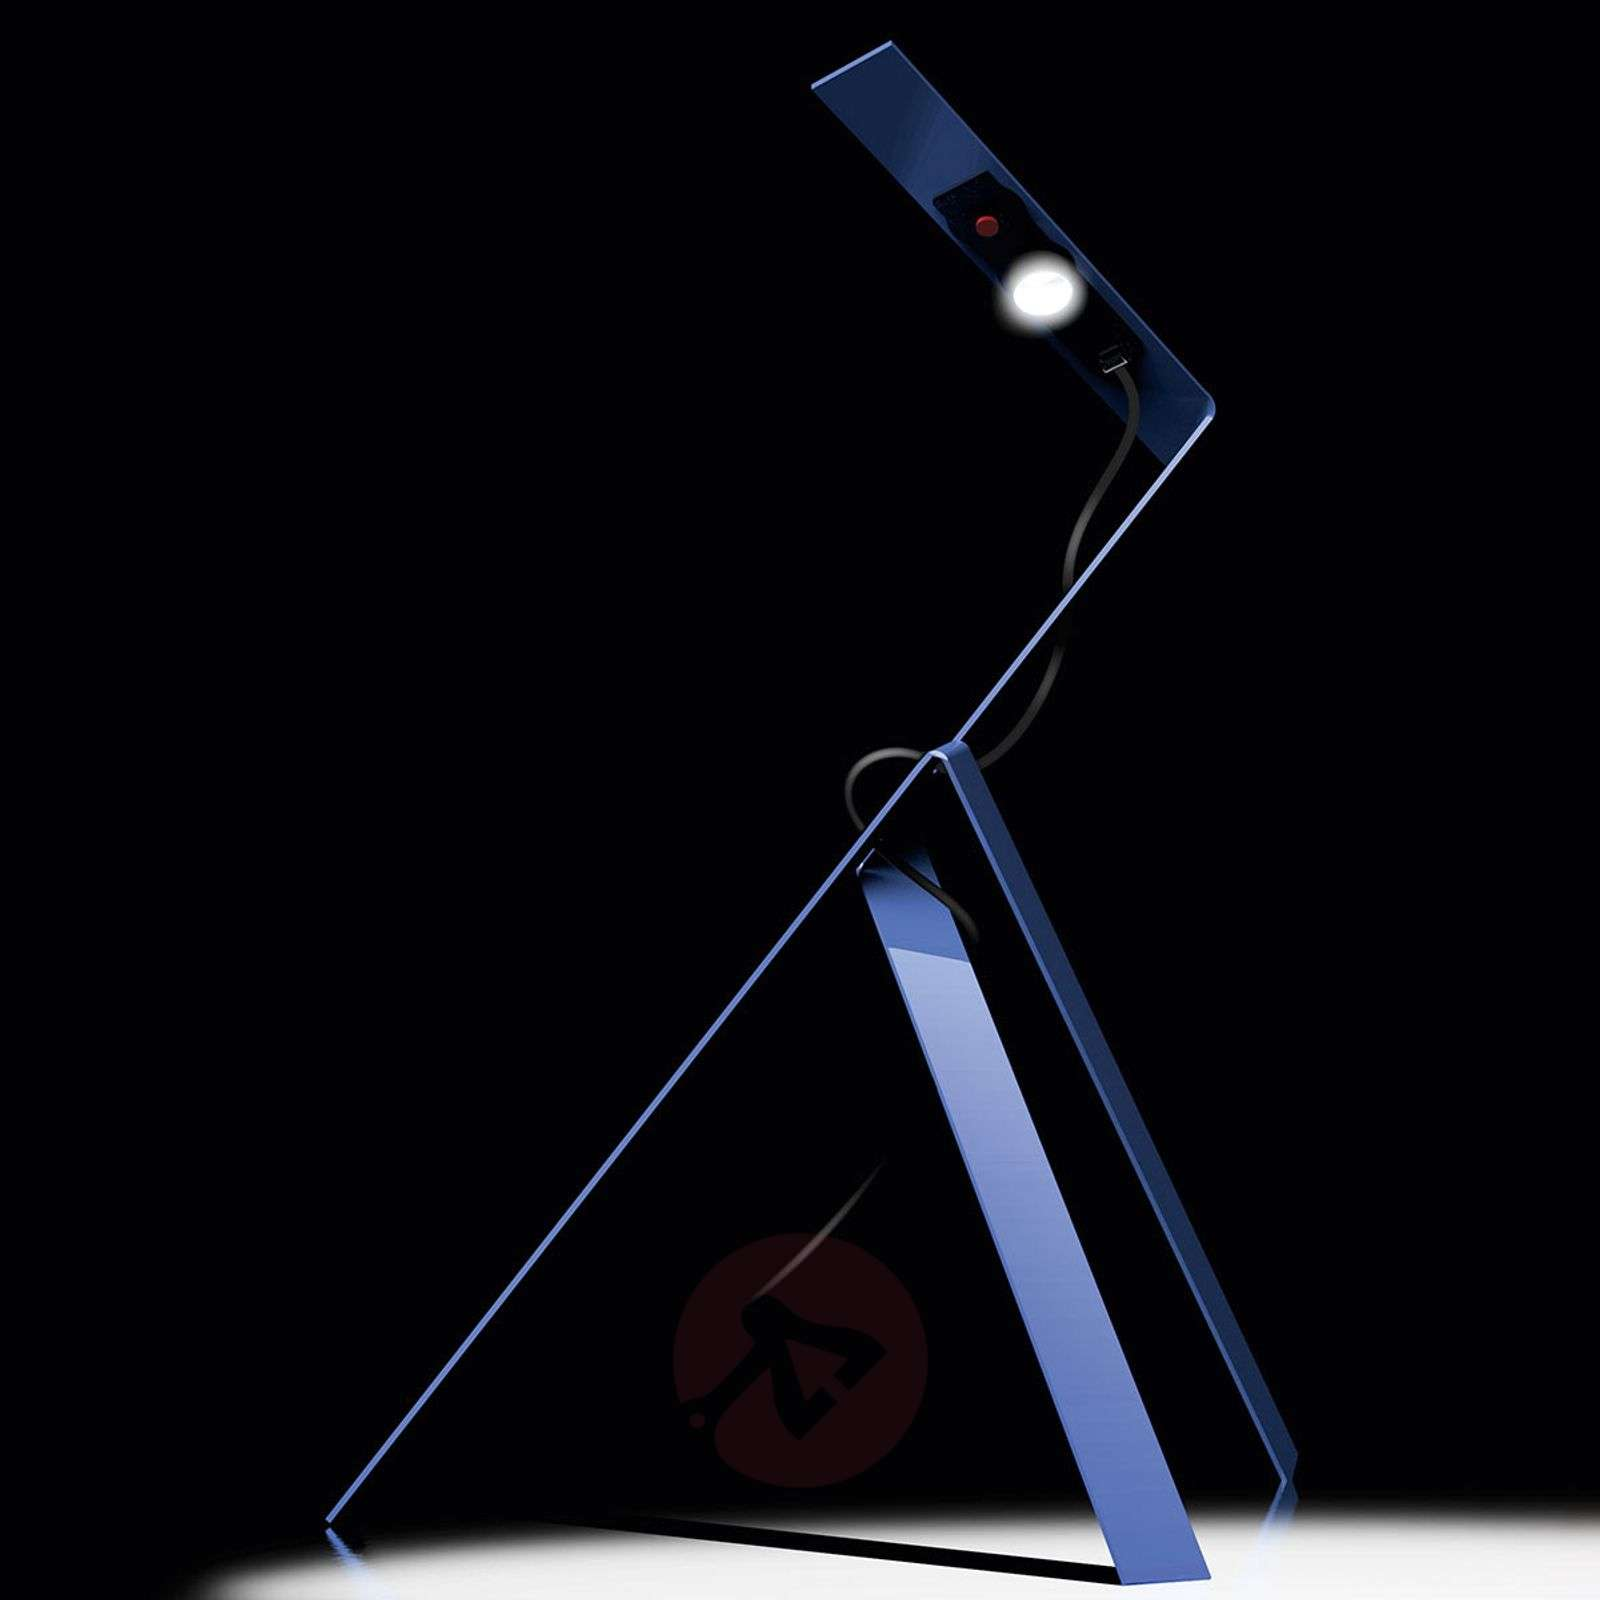 LED table lamp Jetzt² in an abstract design-5026098X-01